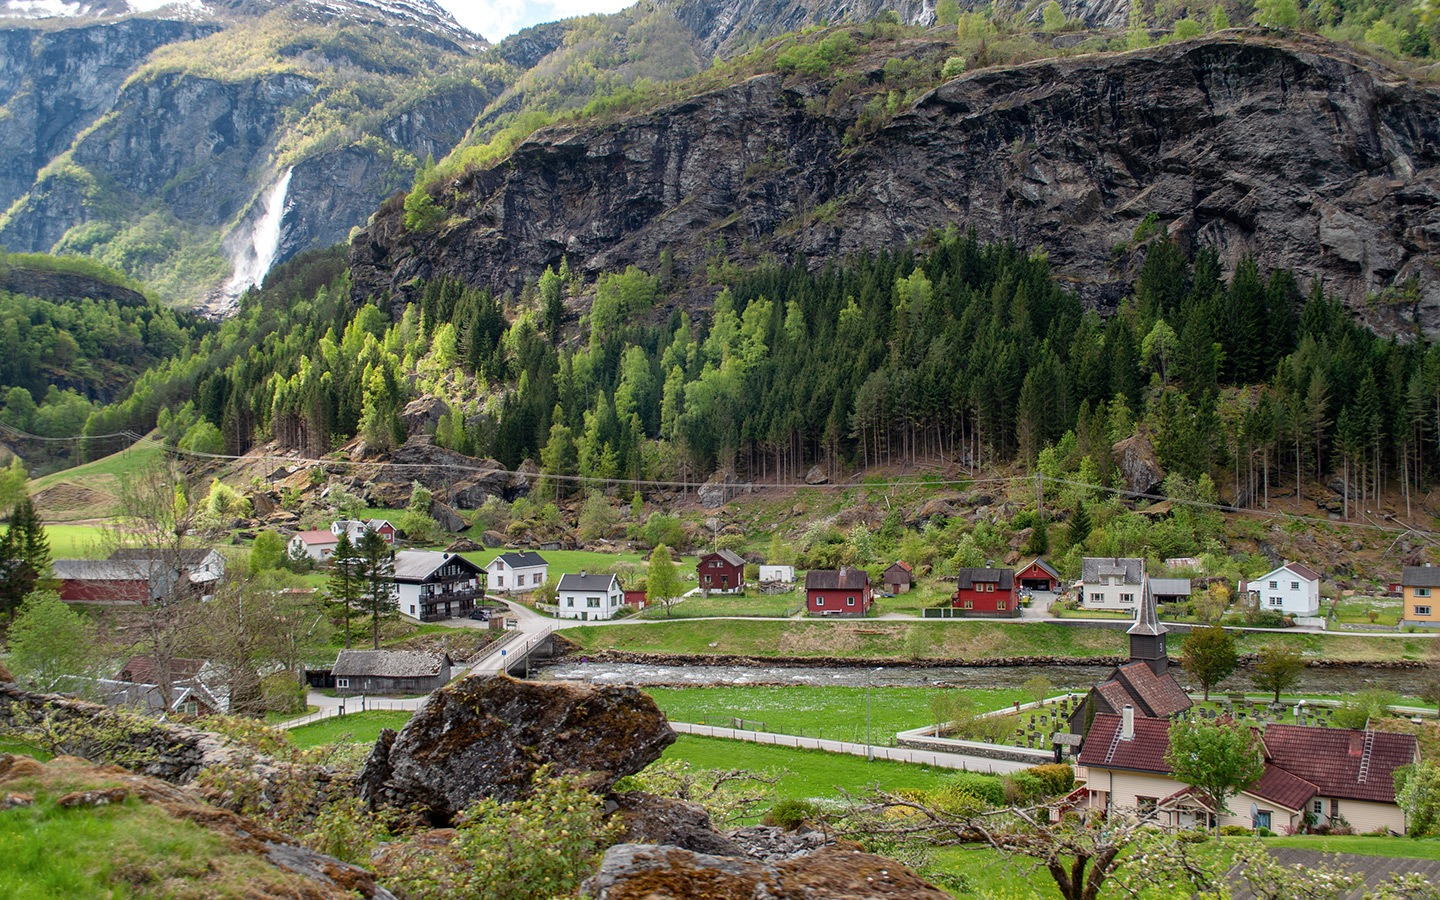 The Flåm Railway in Norway